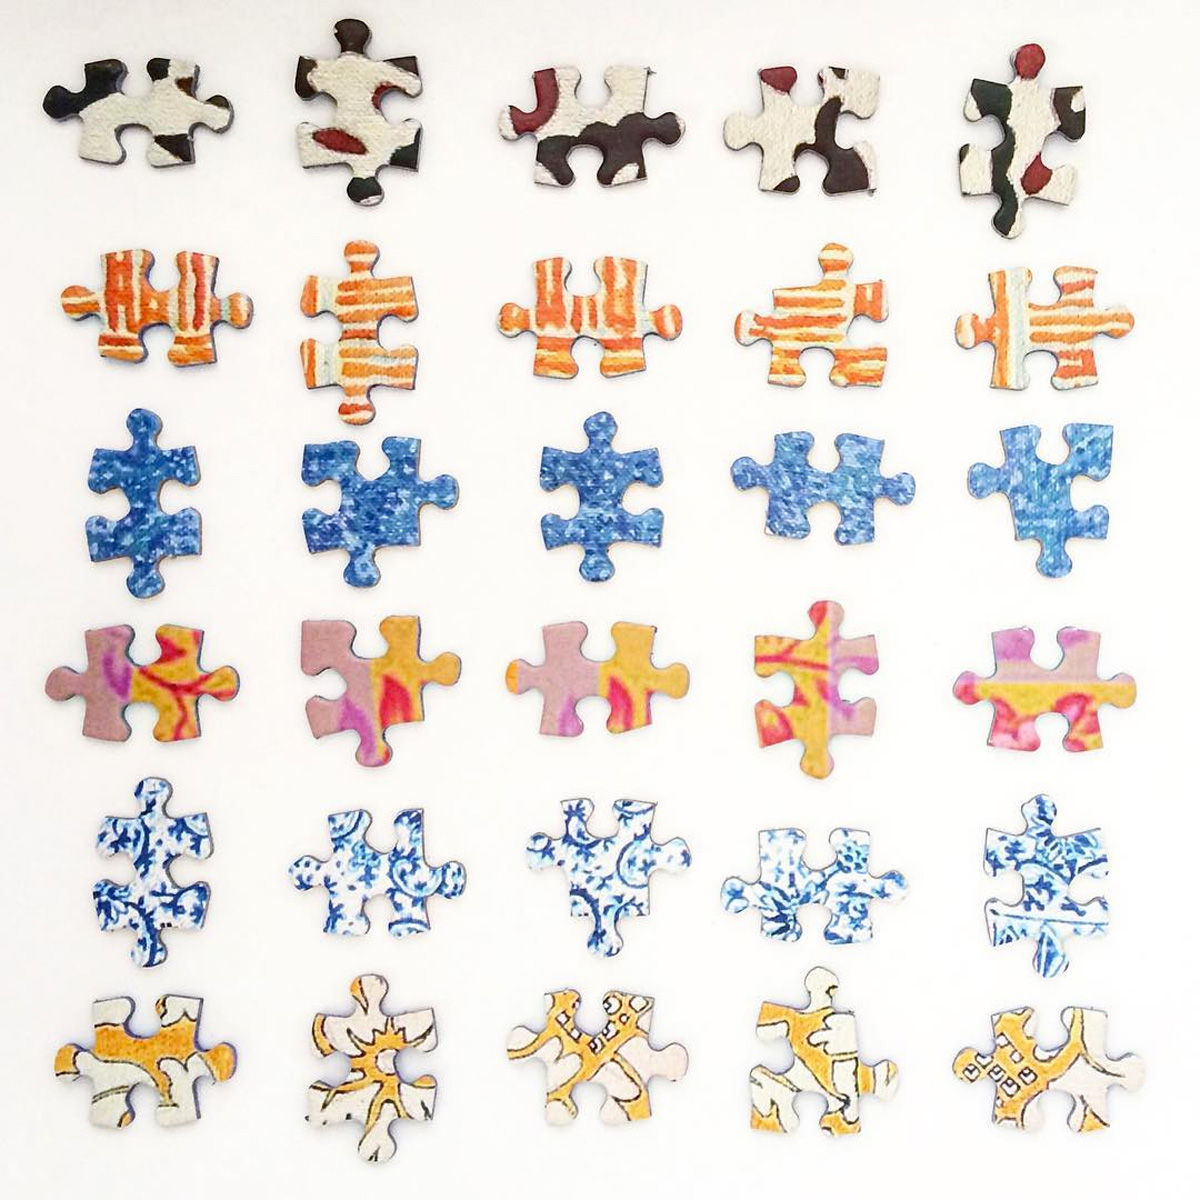 There are lots of surprising health benefits to doing jigsaw puzzles